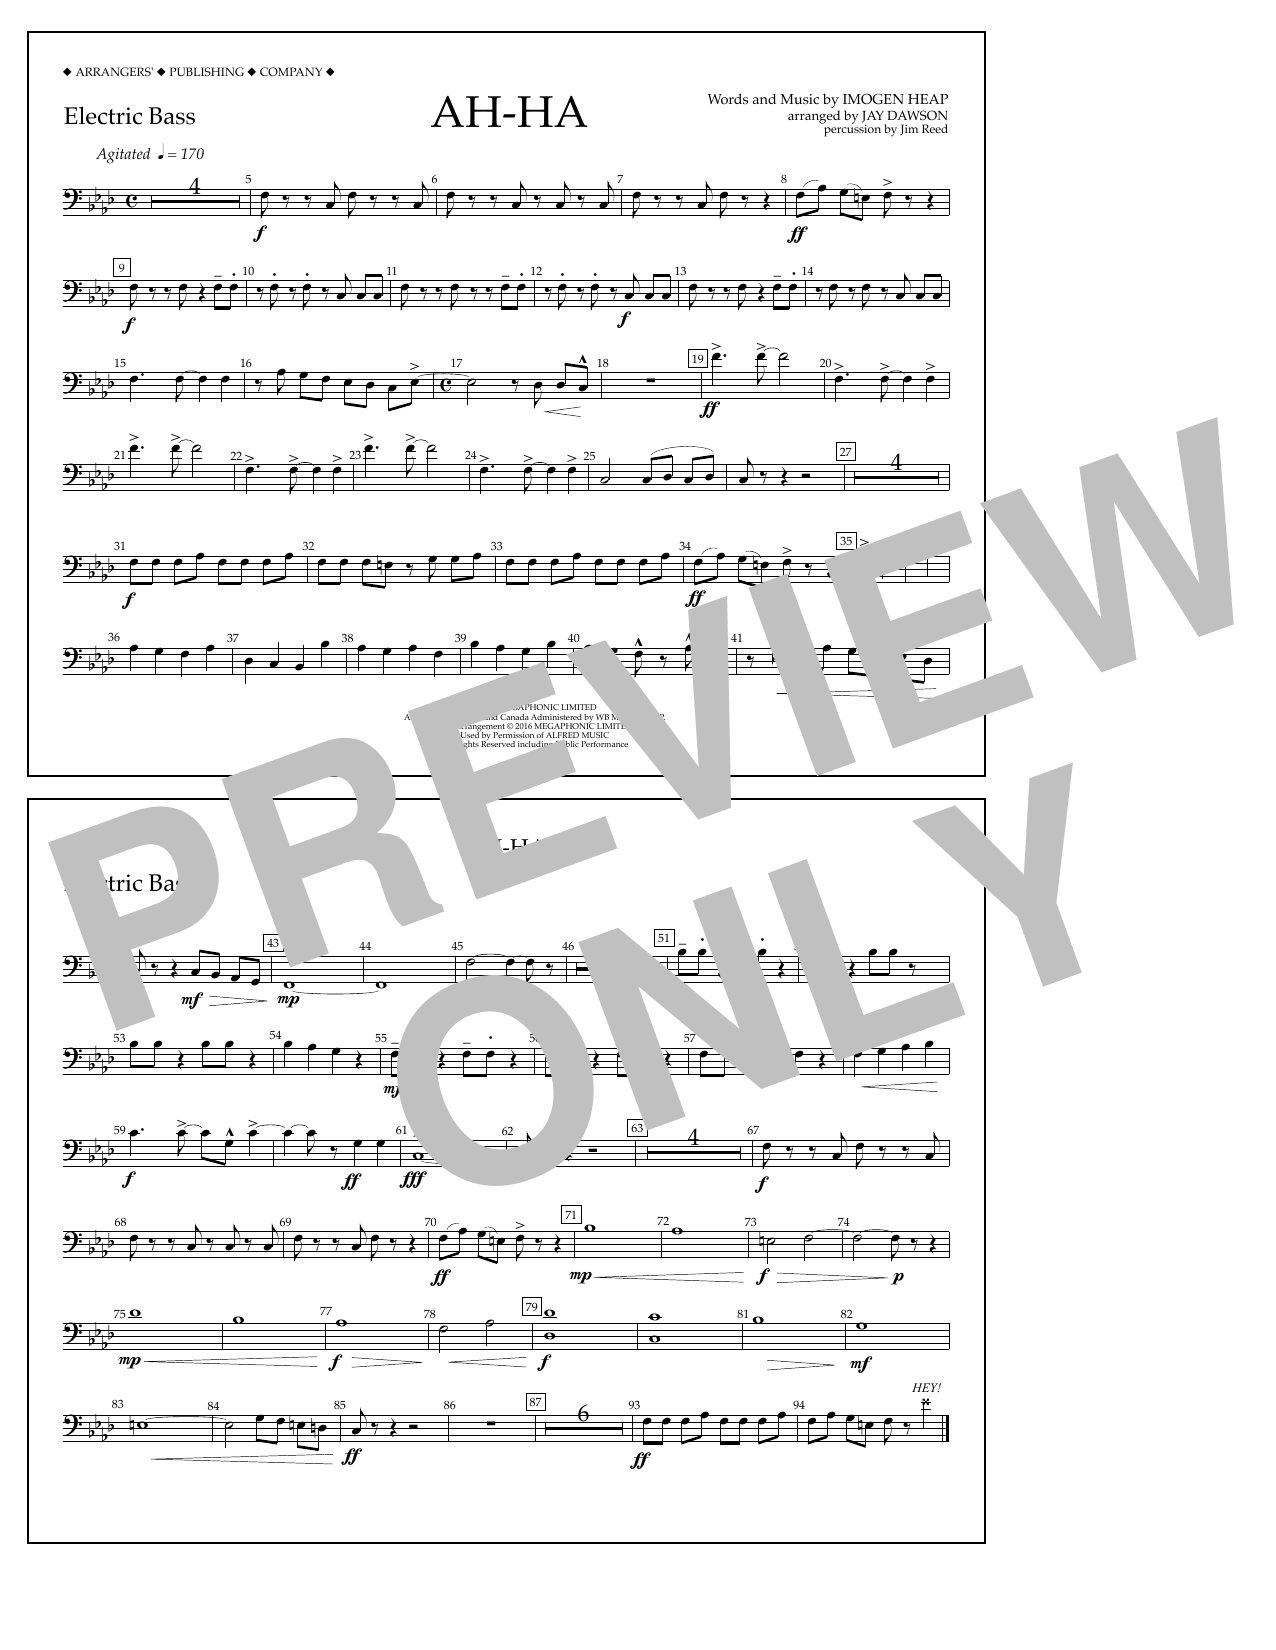 Jay Dawson Ah-ha - Electric Bass sheet music notes and chords. Download Printable PDF.